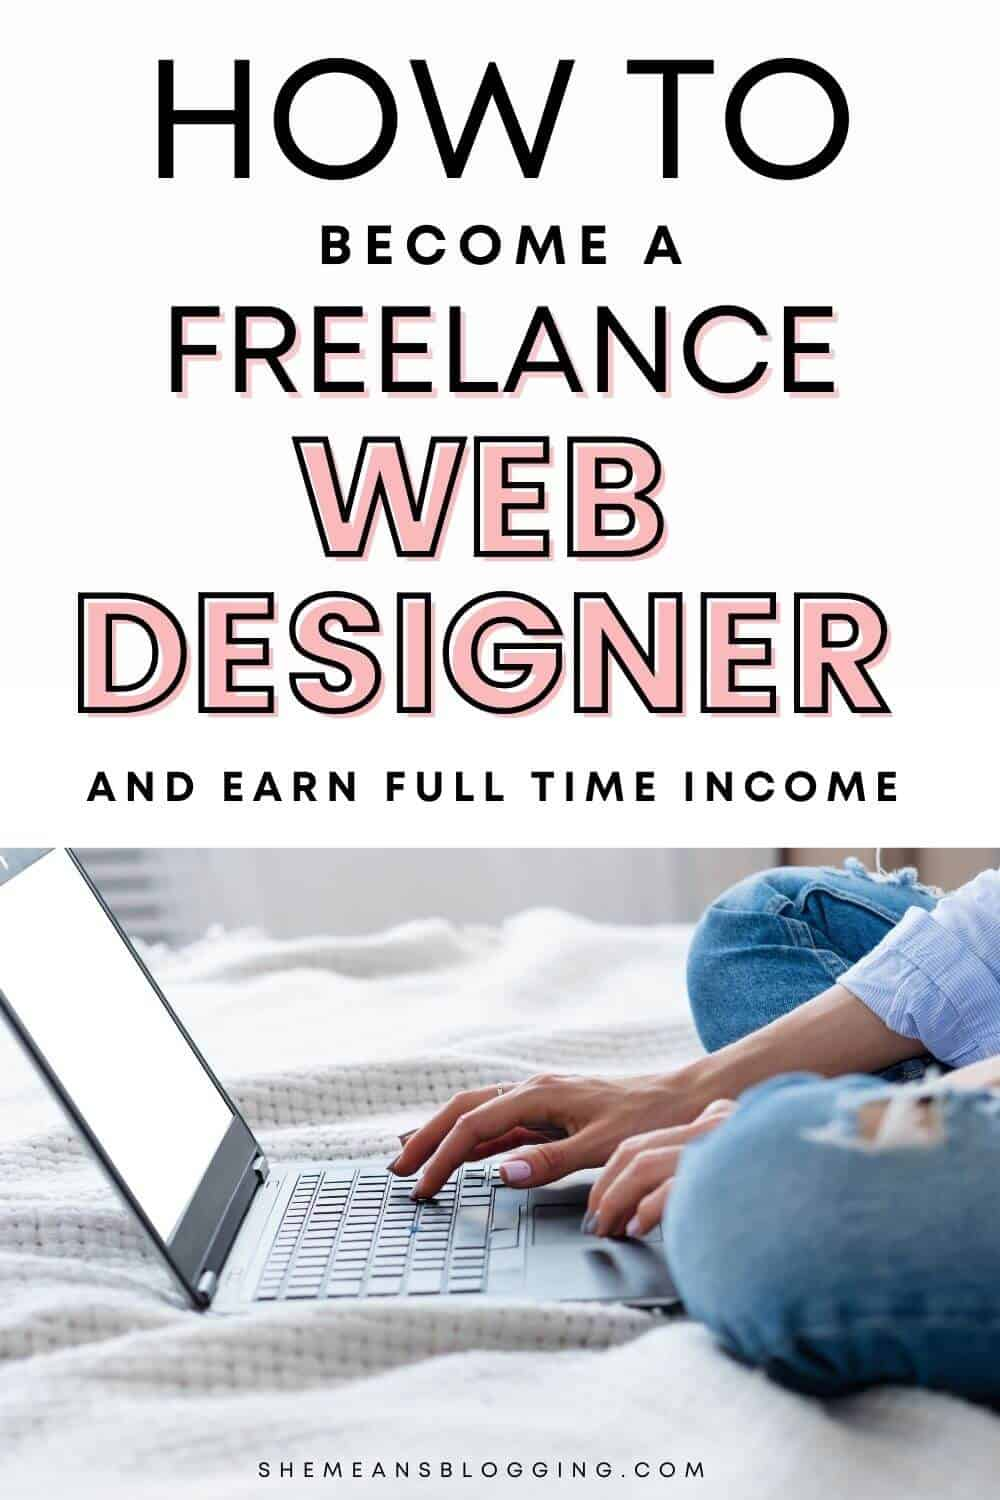 How to become a freelance web designer at home and earn full time income? Learn how to earn money with freelance web designing skills. Find out how to earn money with freelance web design at home. Click to read how this freelancer makes money online.